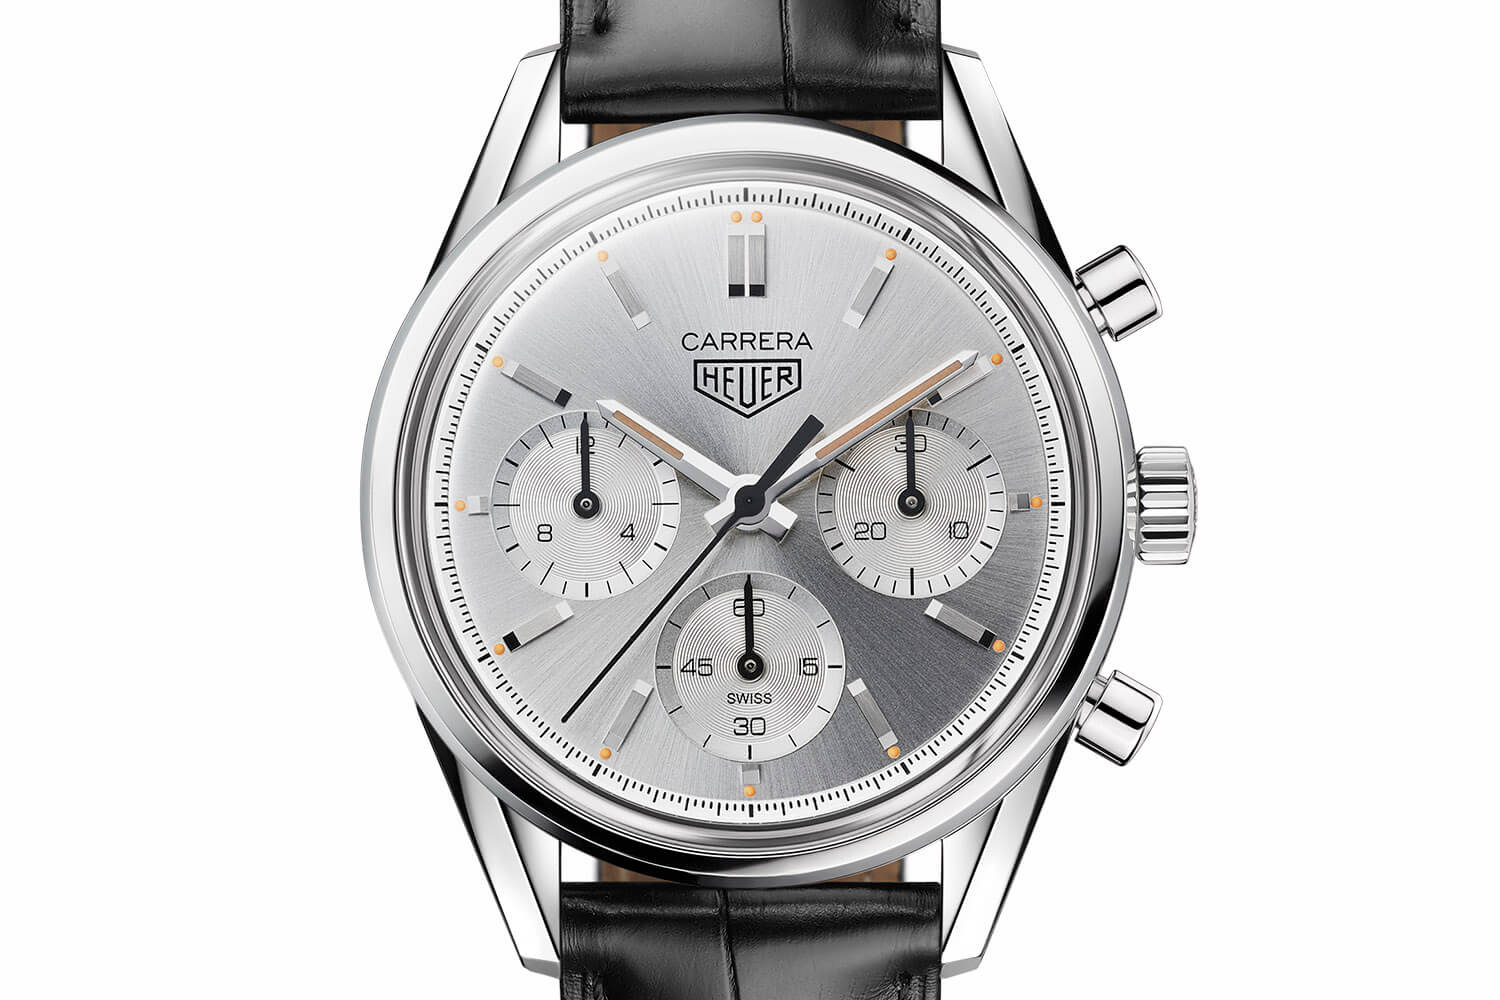 Tag Heuer Carrera 160 Years Silver Limited Edition Heuer portada